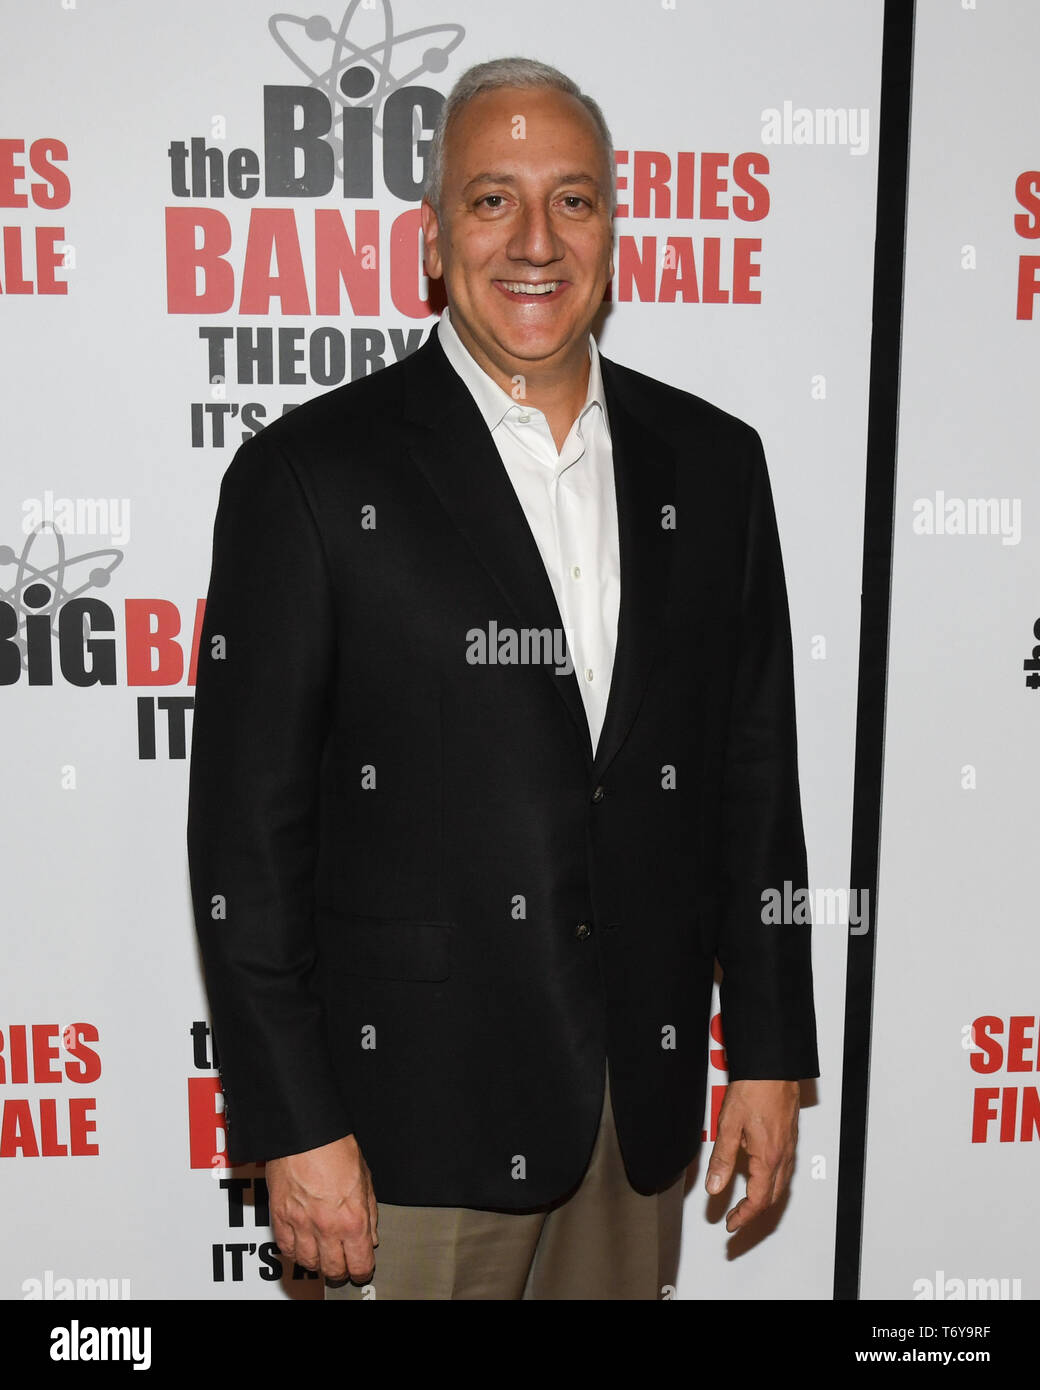 May 1, 2019 - MICHAEL J. MASSIMINO attends The Big Bang Theory's Series Finale Party at the The Langham Huntington. (Credit Image: © Billy Bennight/ZUMA Wire) - Stock Image